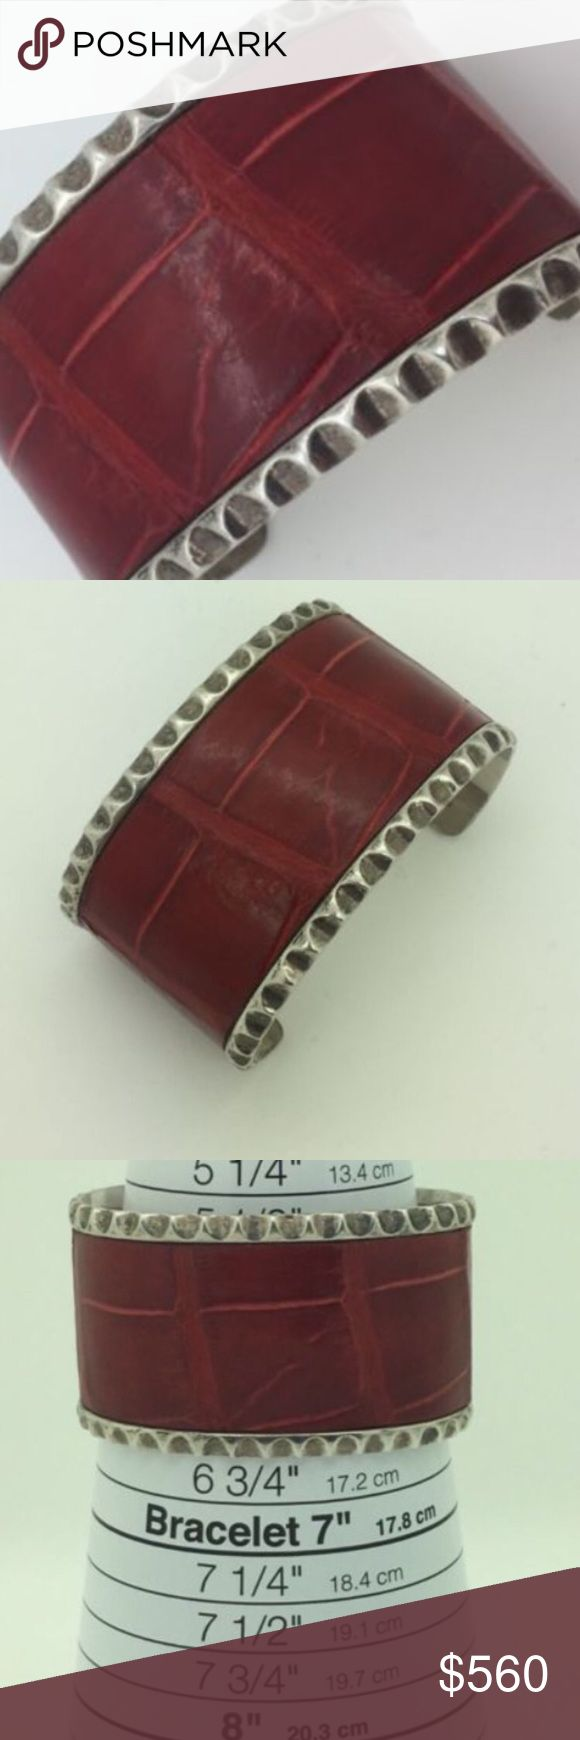 pat Areias Silver alligator leather bracelet!!! Unique pat Areias Sterling silver bracelet!!! Super RARE!!! Wonderful present for yourself or anyone you ❤️ !!! Authentic guaranteed 100% or your money back no question asked!!! Engraving: a pat Areias 925 !!! Condition pre owned excellent condition guaranteed!!! Bracelet is Sterling silver & alligator leather!!! Bracelet is in diameter inner: 60mm !!! Bracelet is: 37mm with!!! Weight: 45.8 grams!!! Please see pictures for more information…